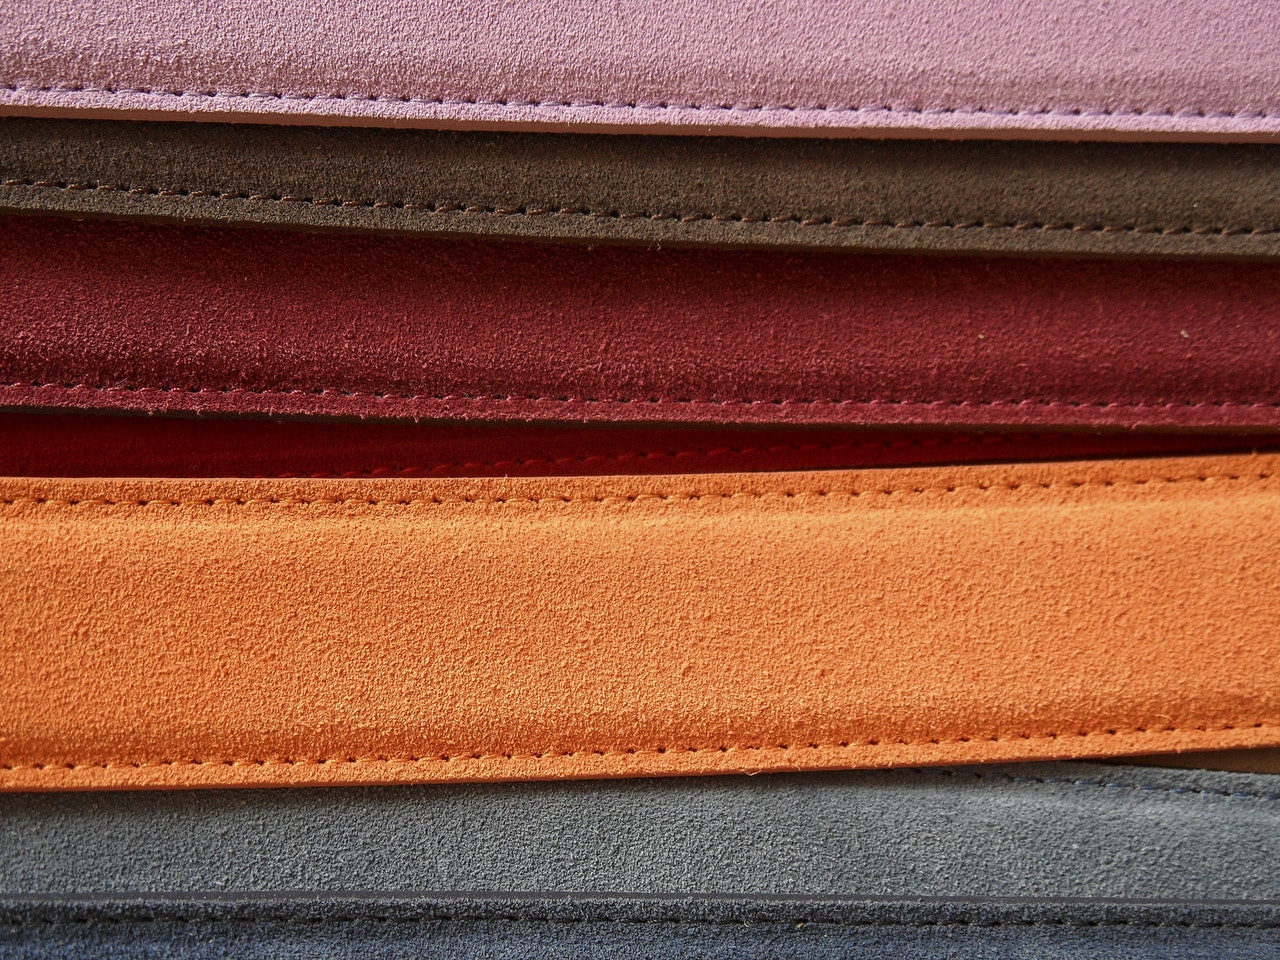 Assorted color of leather belts